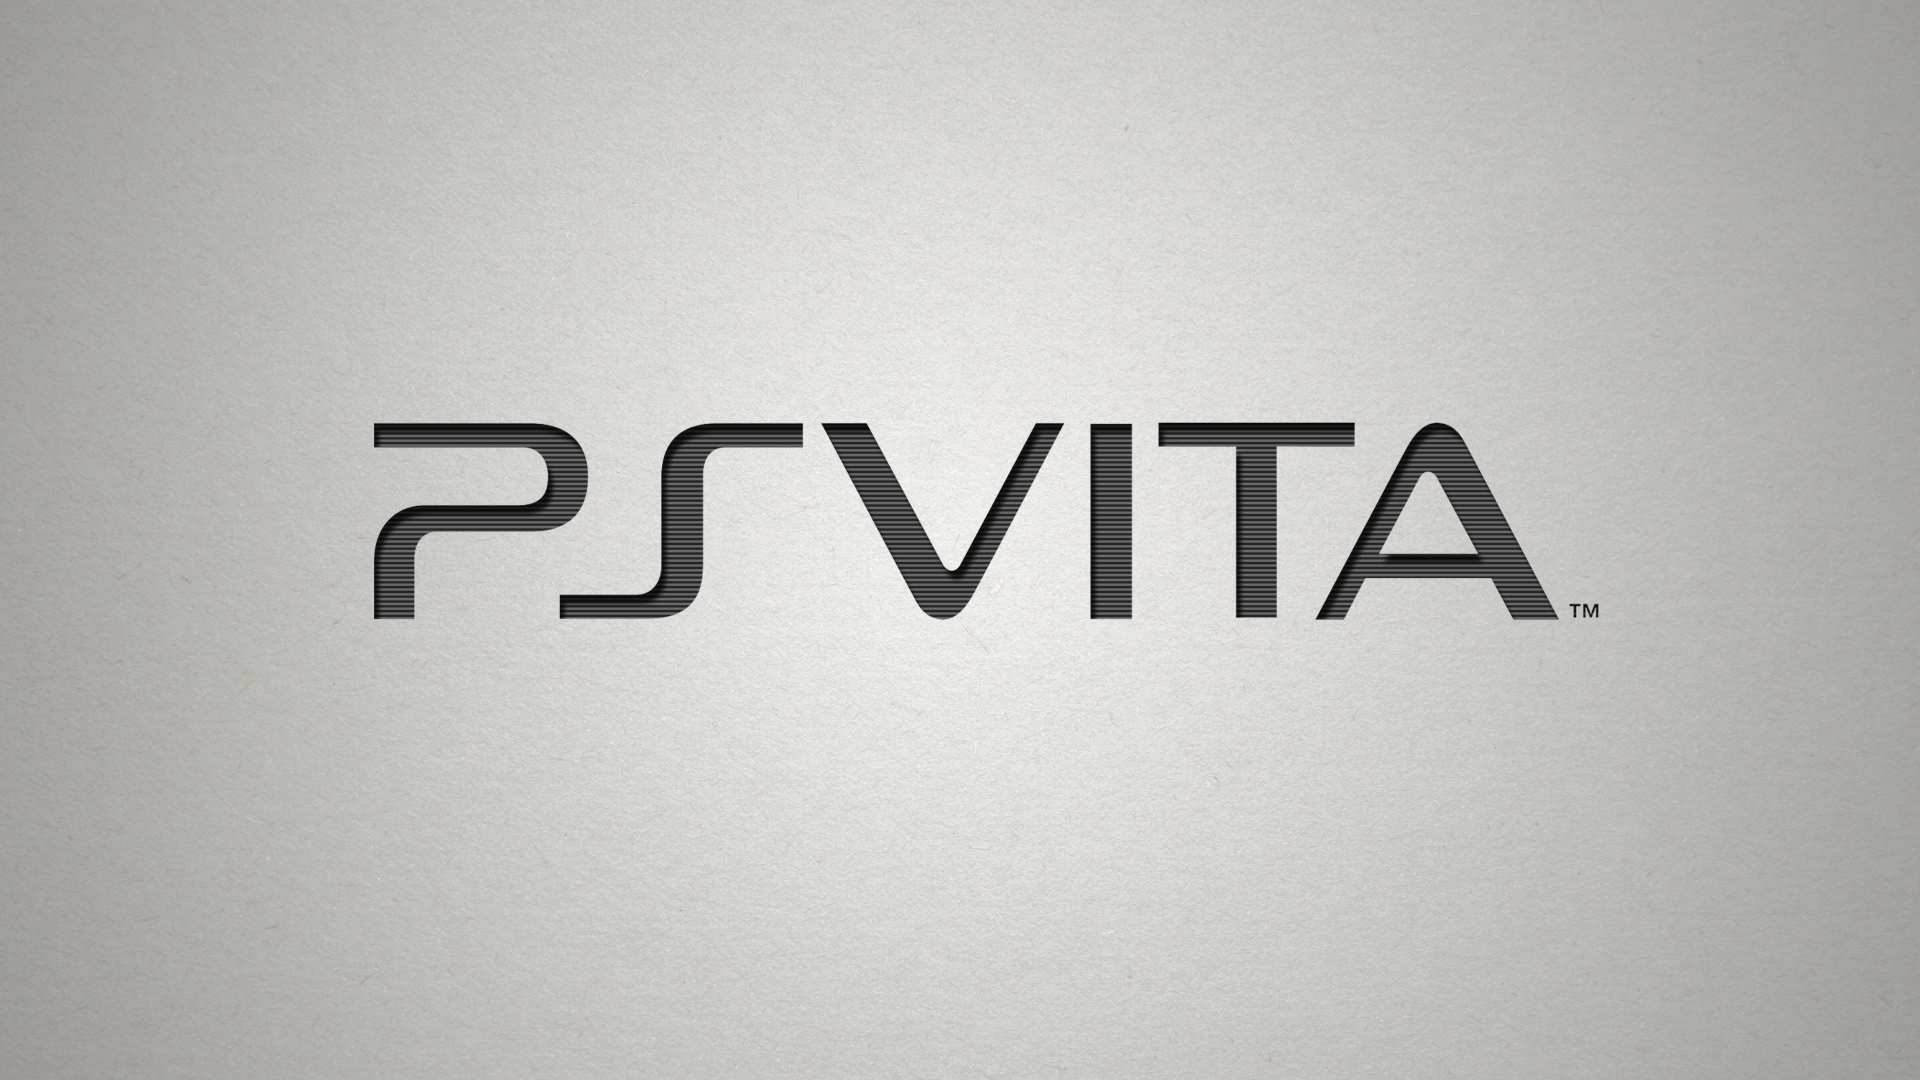 2 playstation vita hd wallpapers | background images - wallpaper abyss